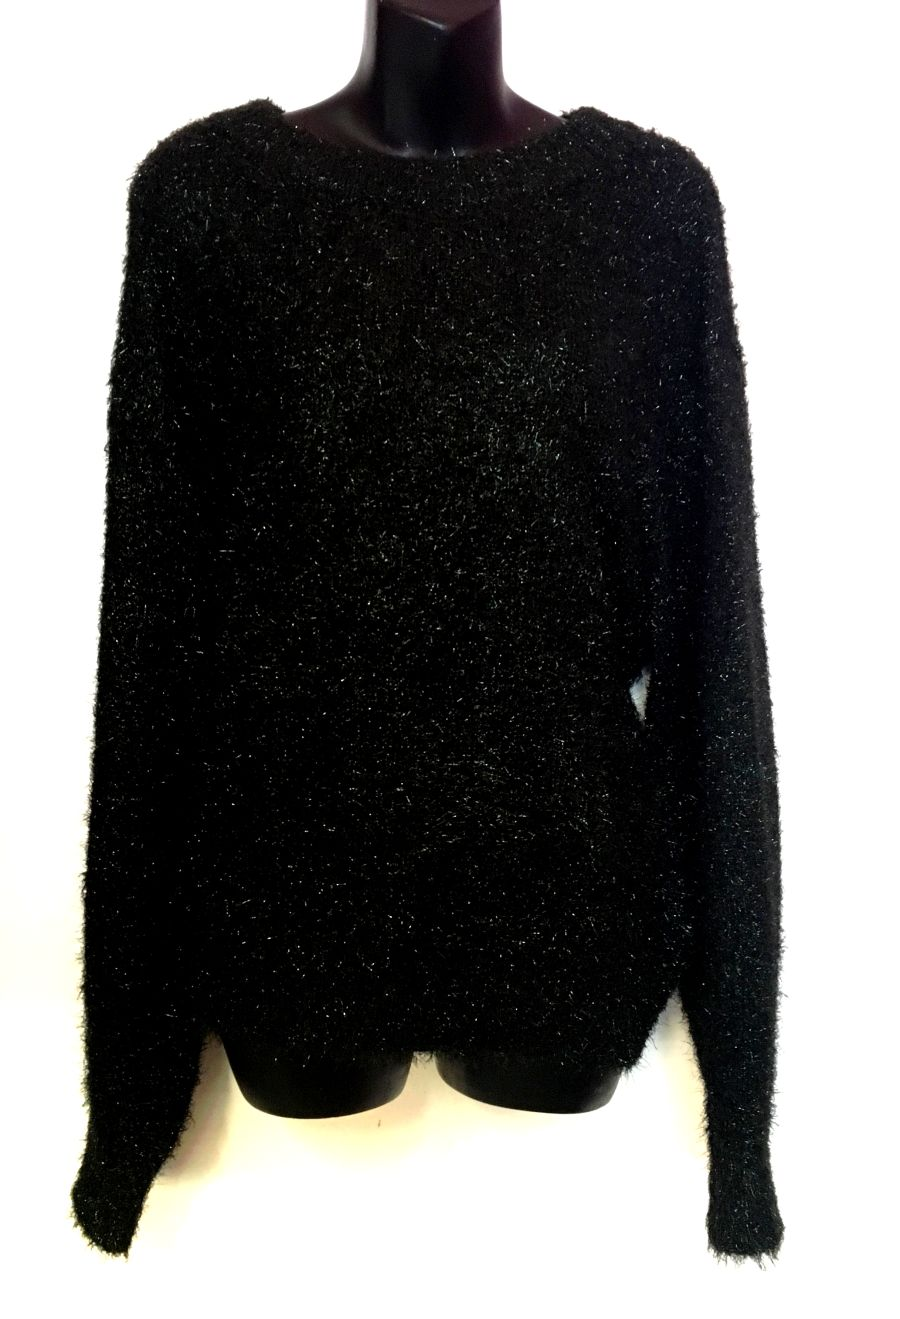 Vintage Womens 90's Black Knitted Sparkle Jumper